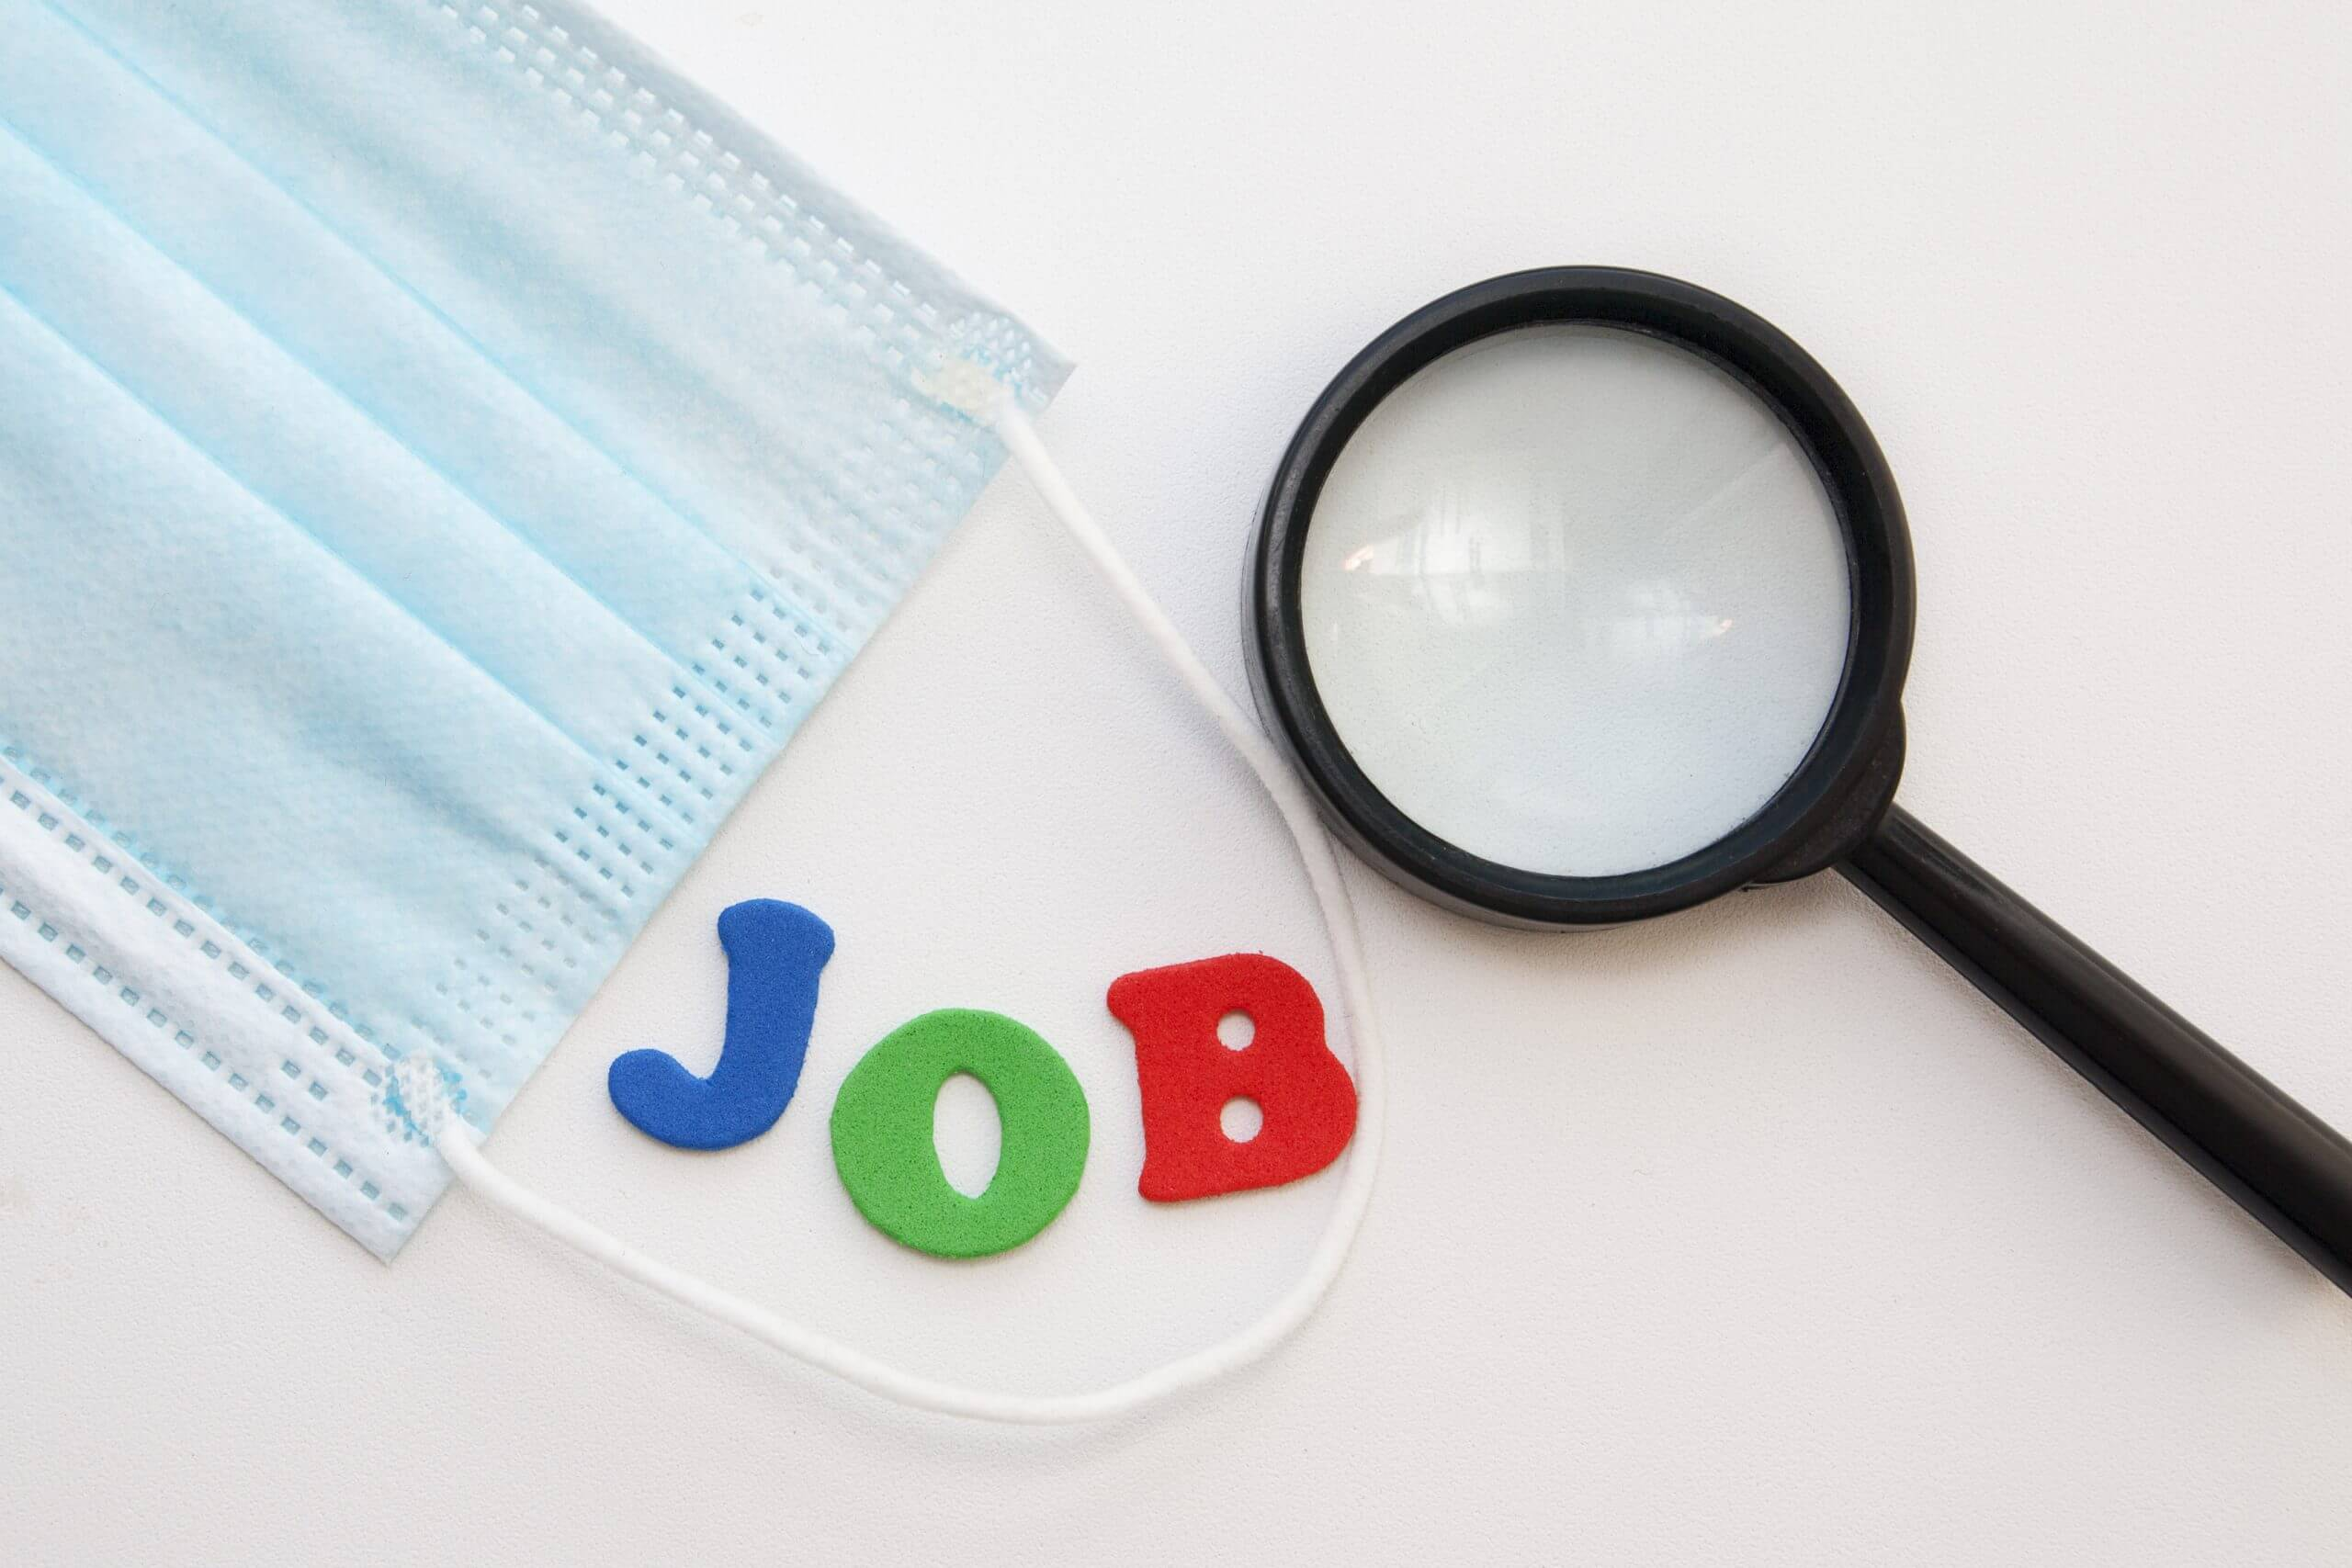 Job search during COVID-19 is different